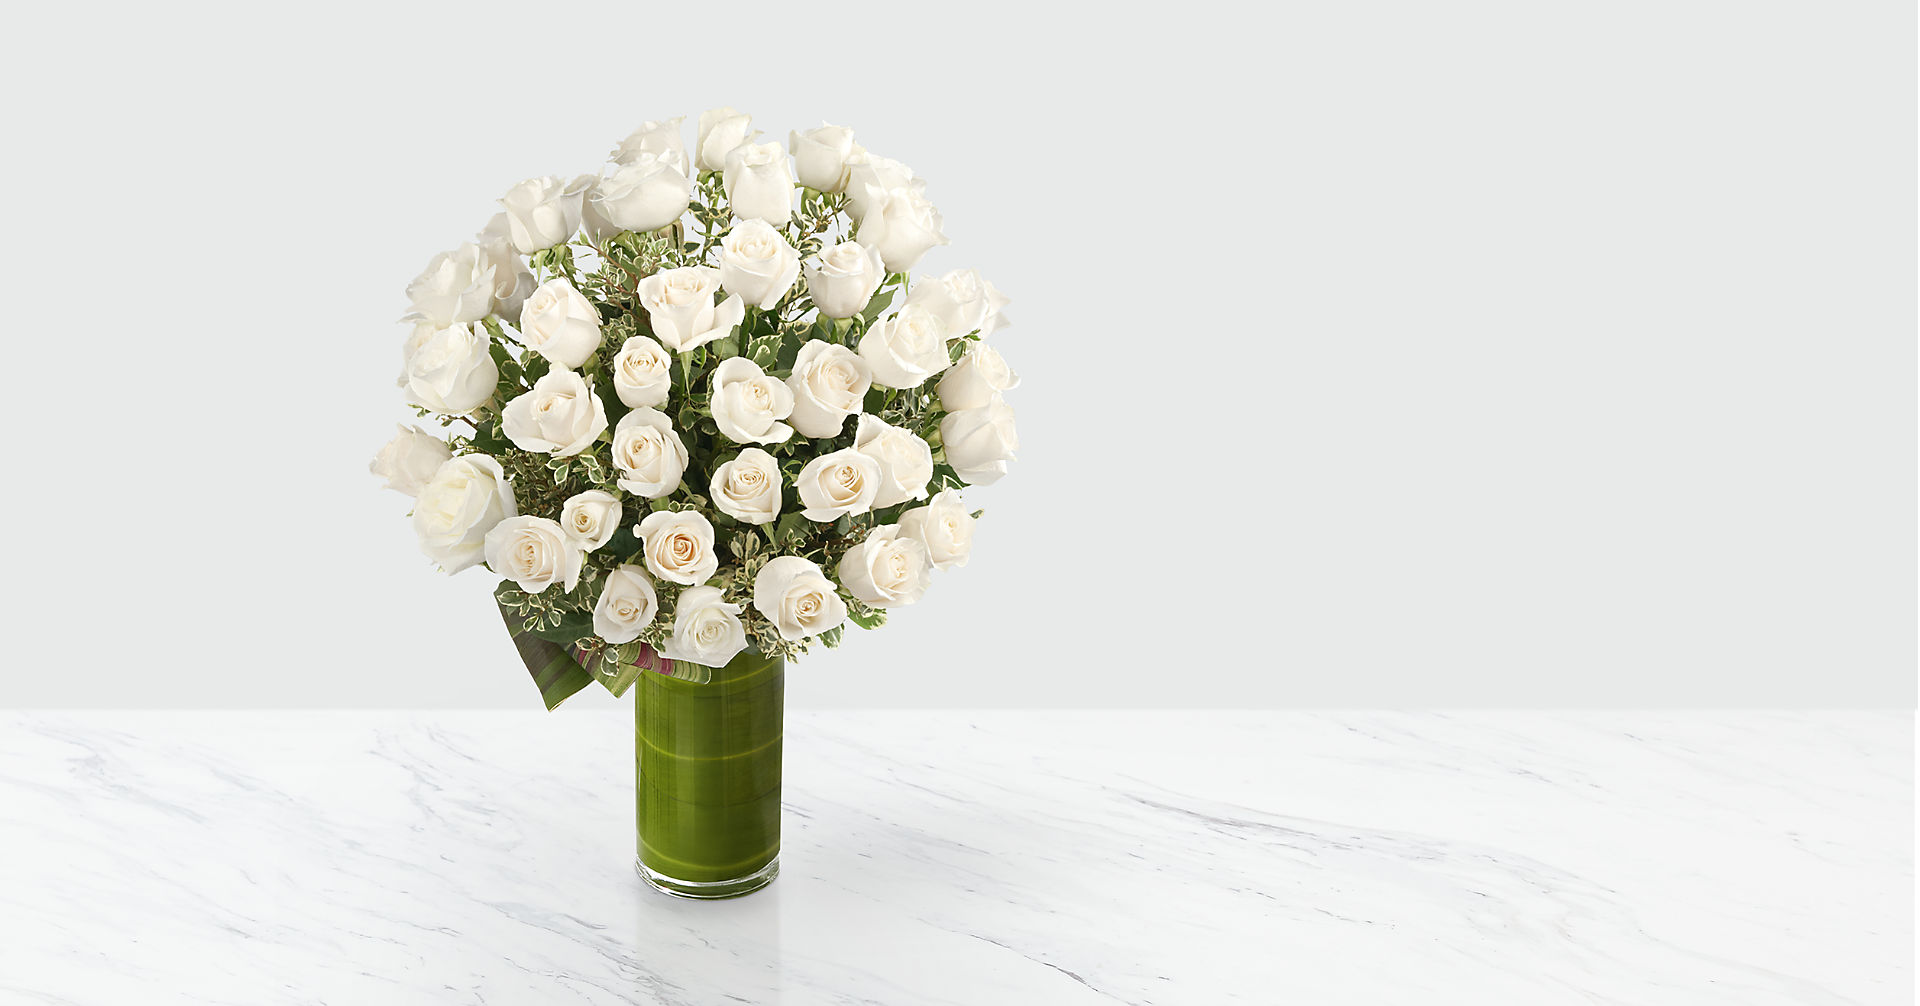 Clarity Luxury Rose Bouquet - 24-inch Premium Long-Stemmed Roses - Image 1 Of 4